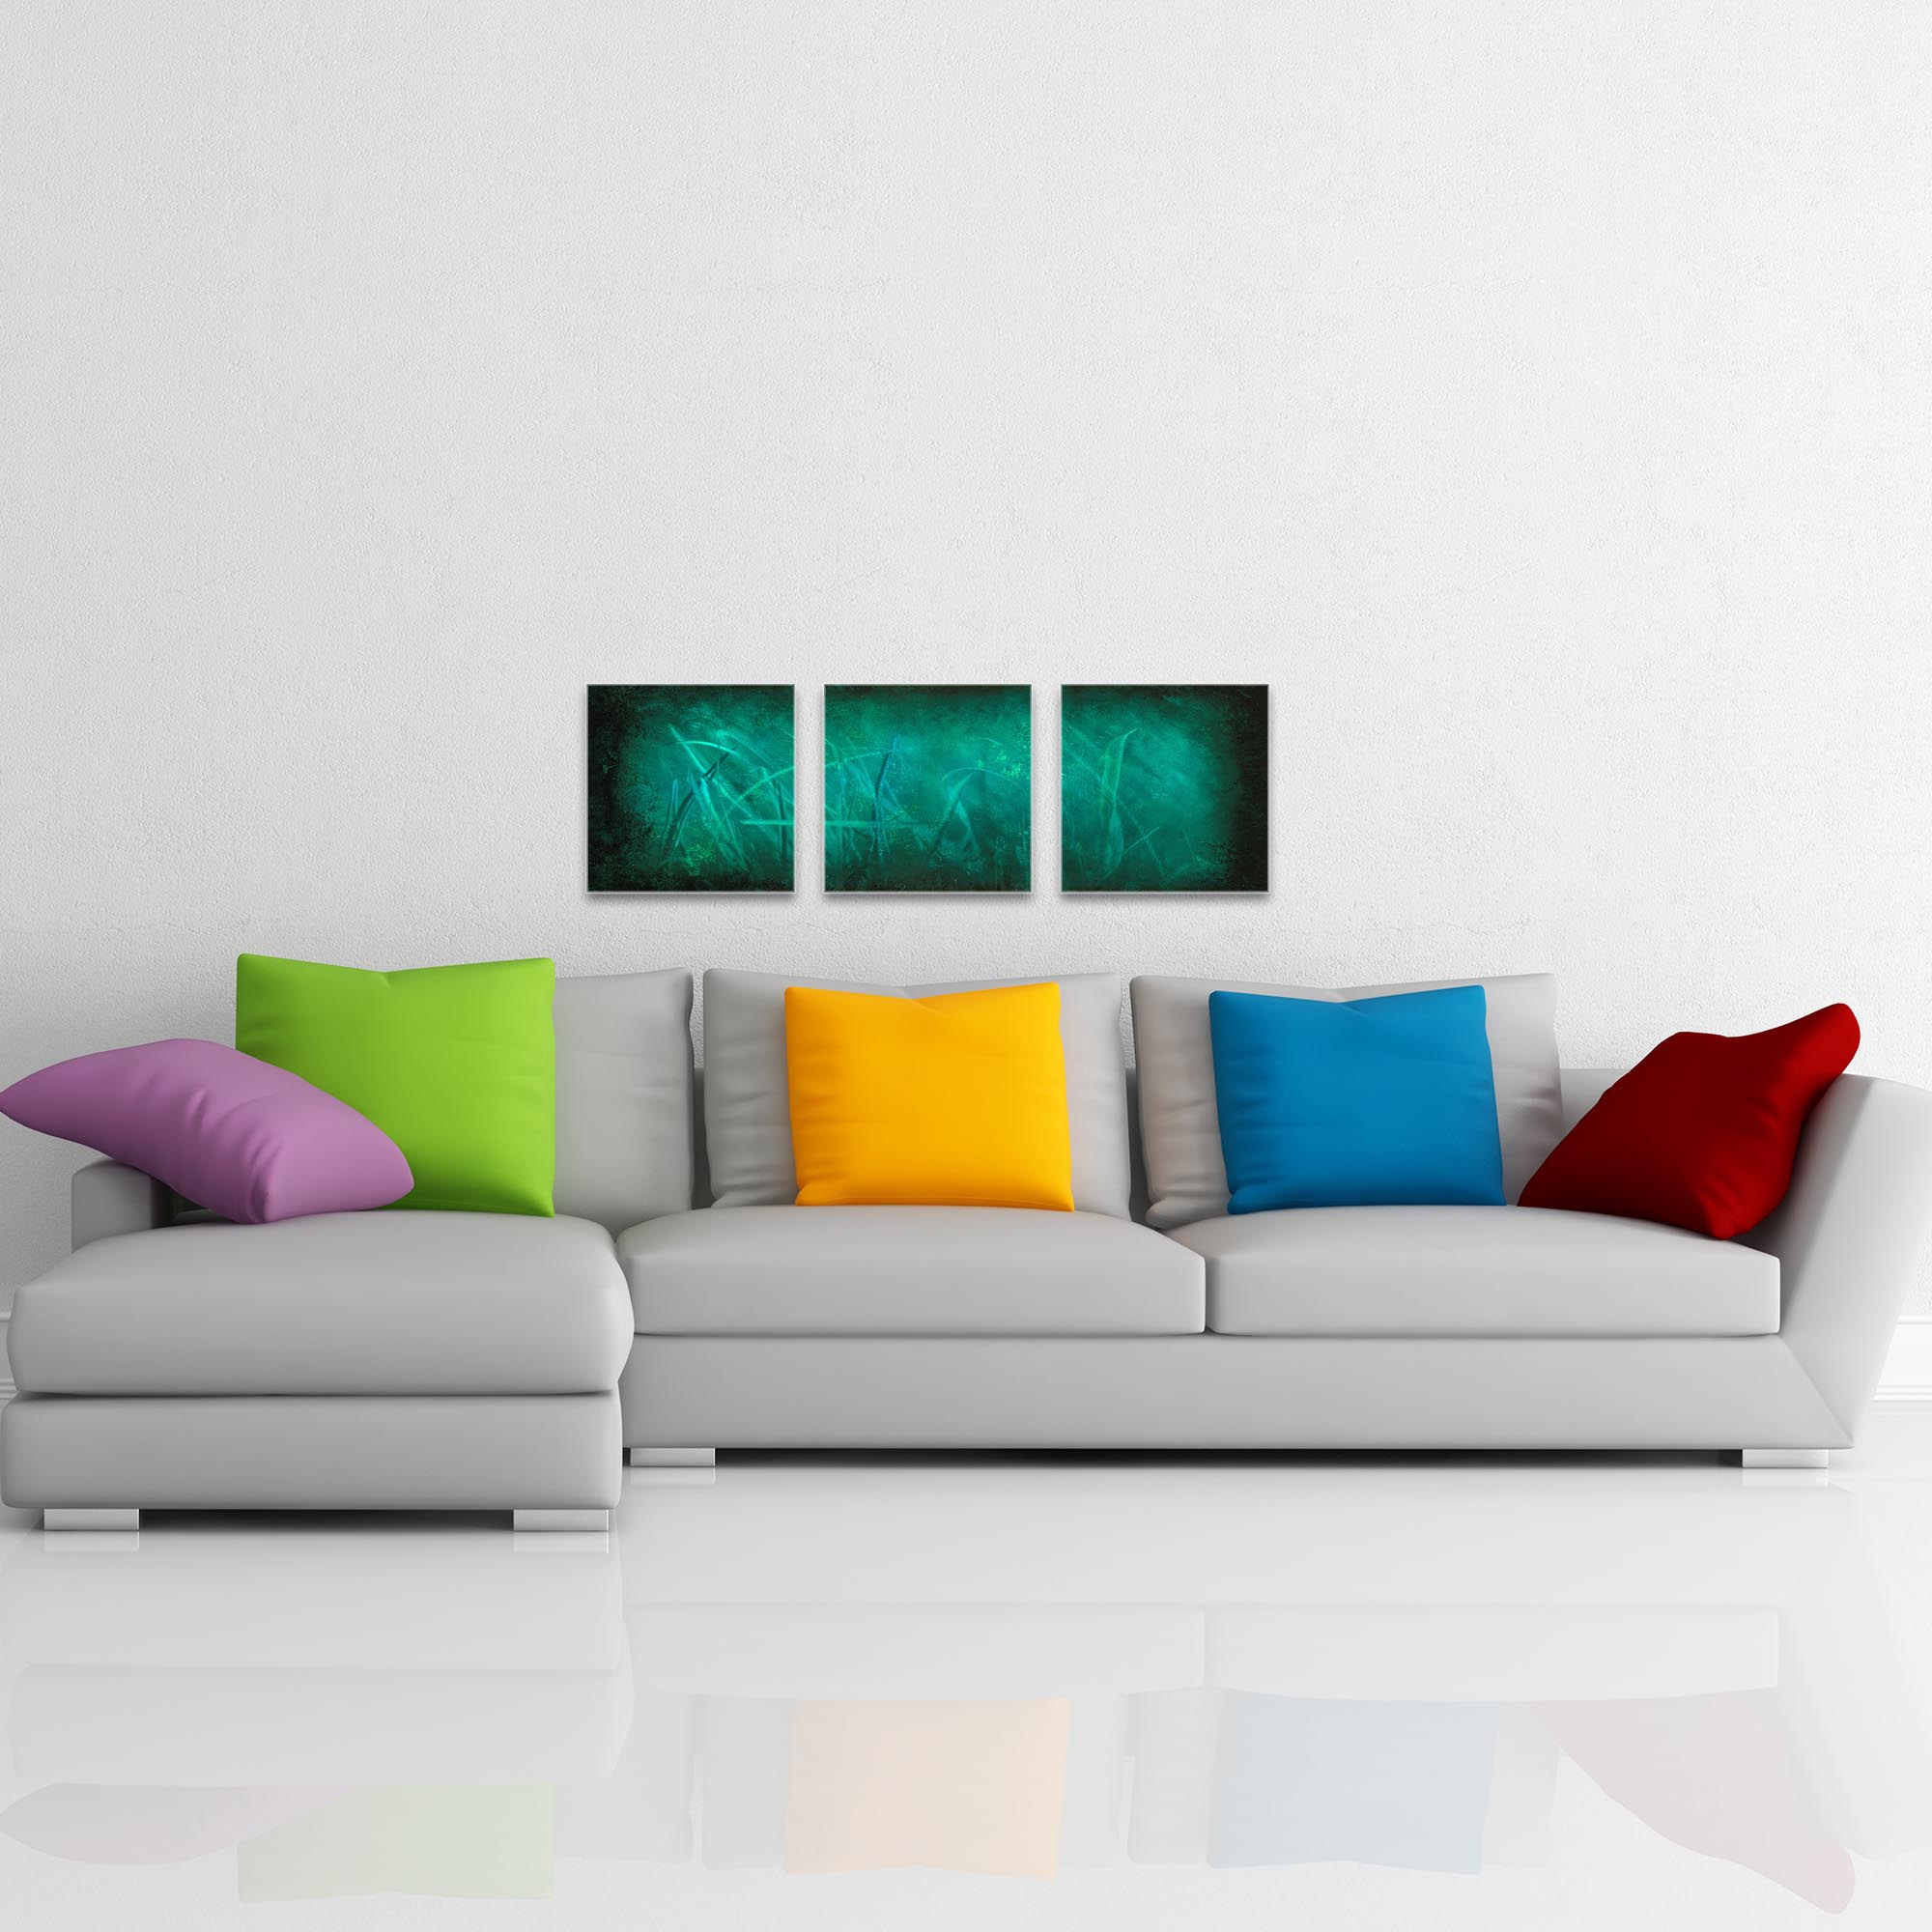 Ocean Mist Triptych 38x12in. Metal or Acrylic Abstract Decor - Image 3